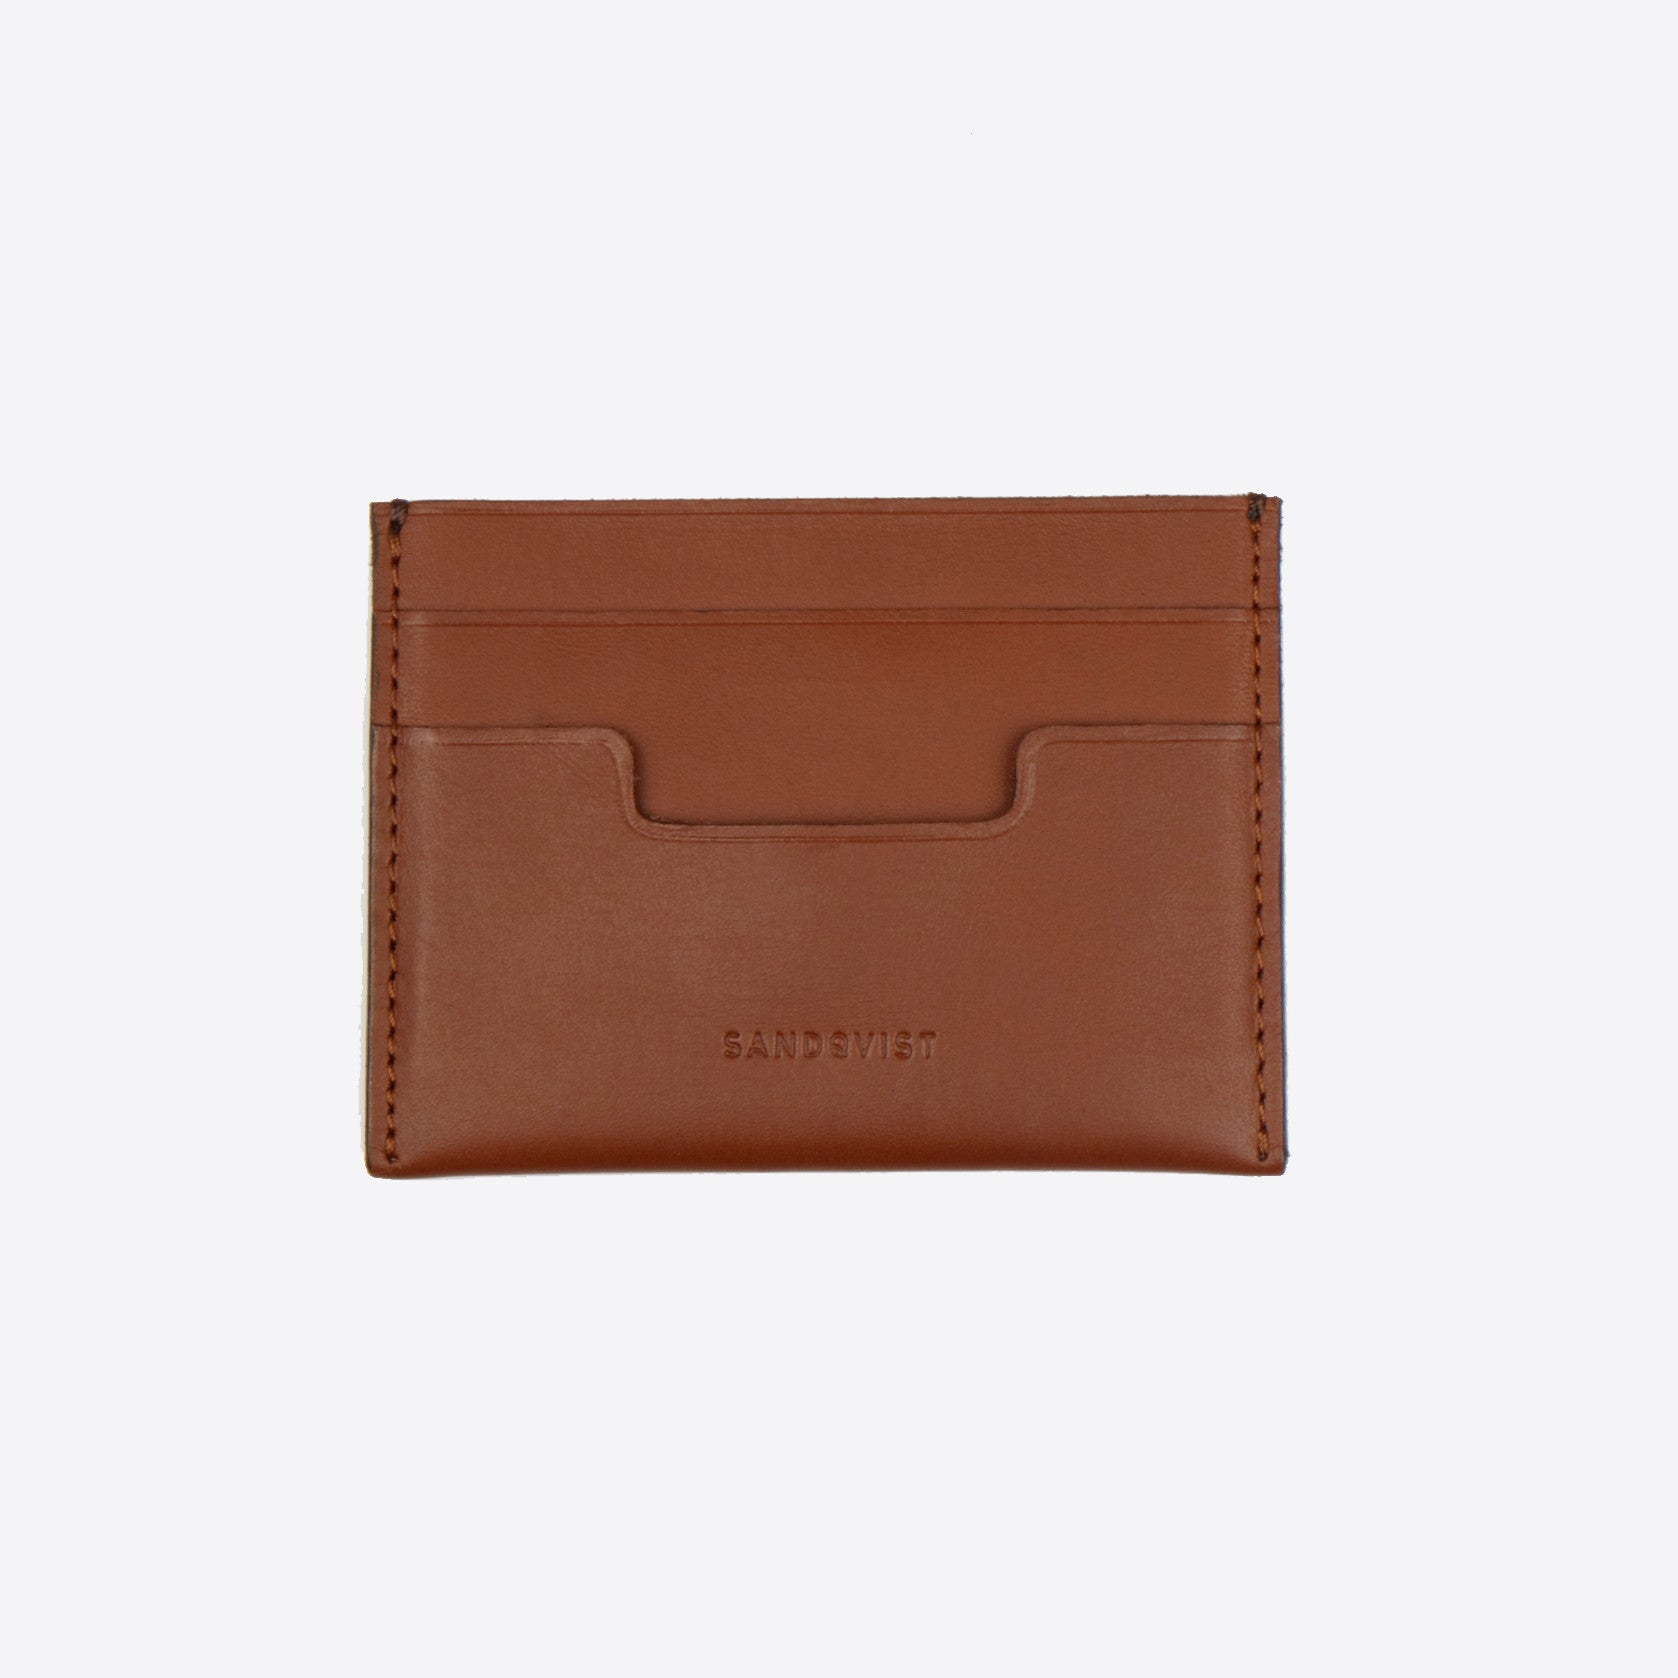 Sandqvist Buck Wallet in Cognac Brown